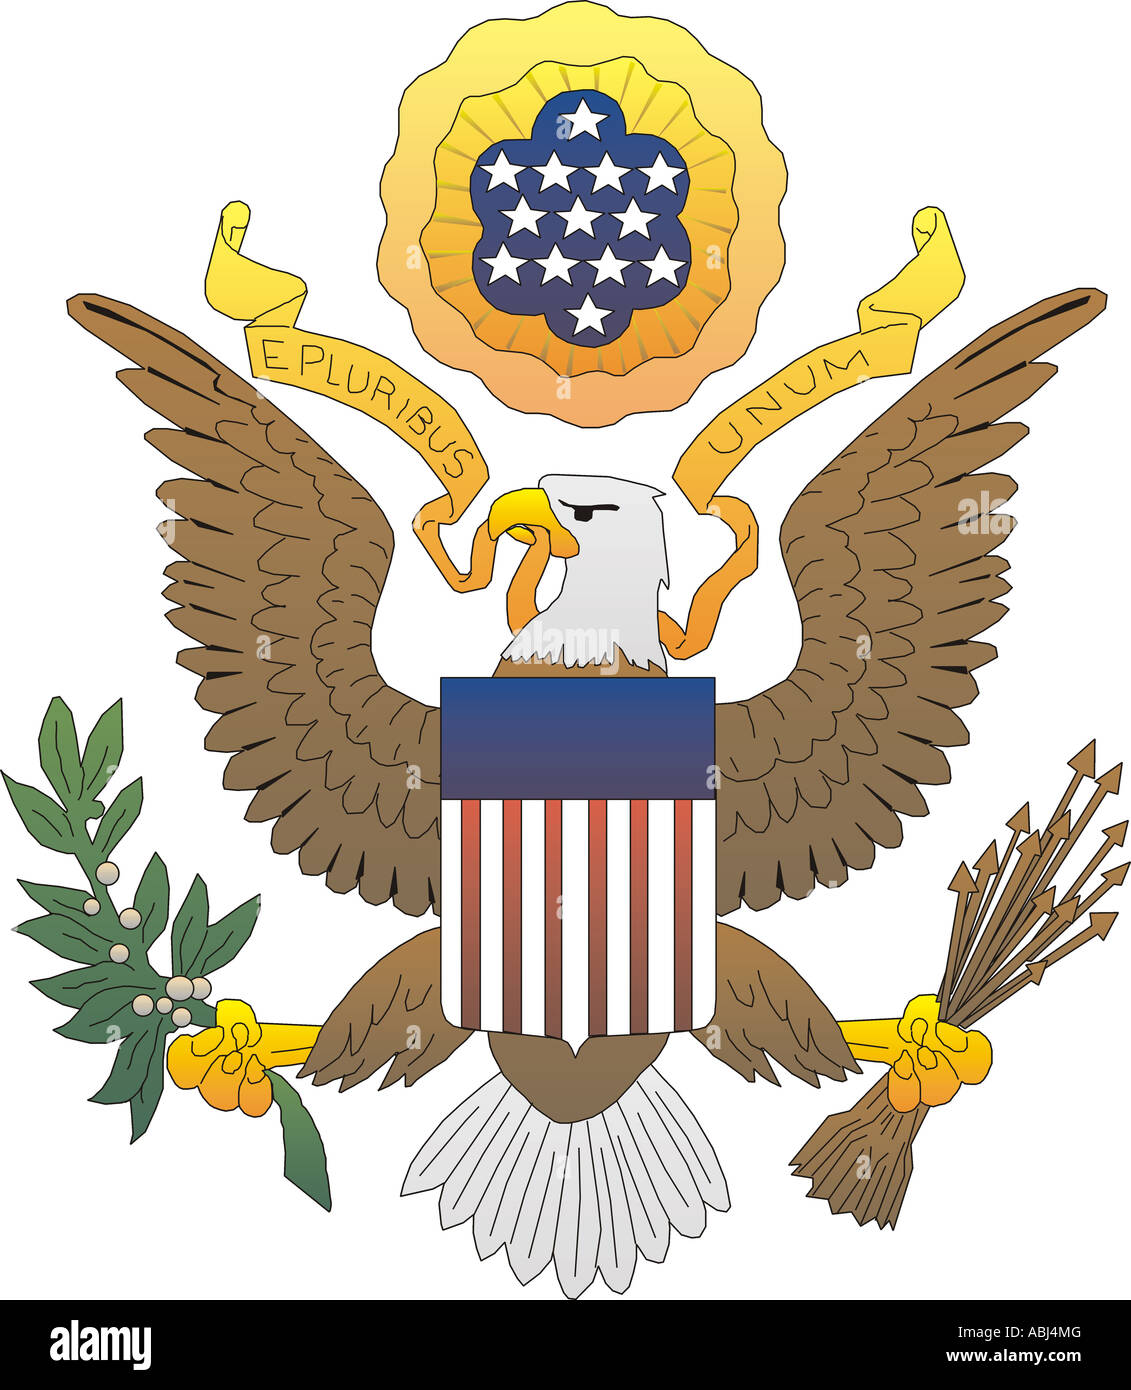 The Great Seal Of The United States Of America - Stock Image